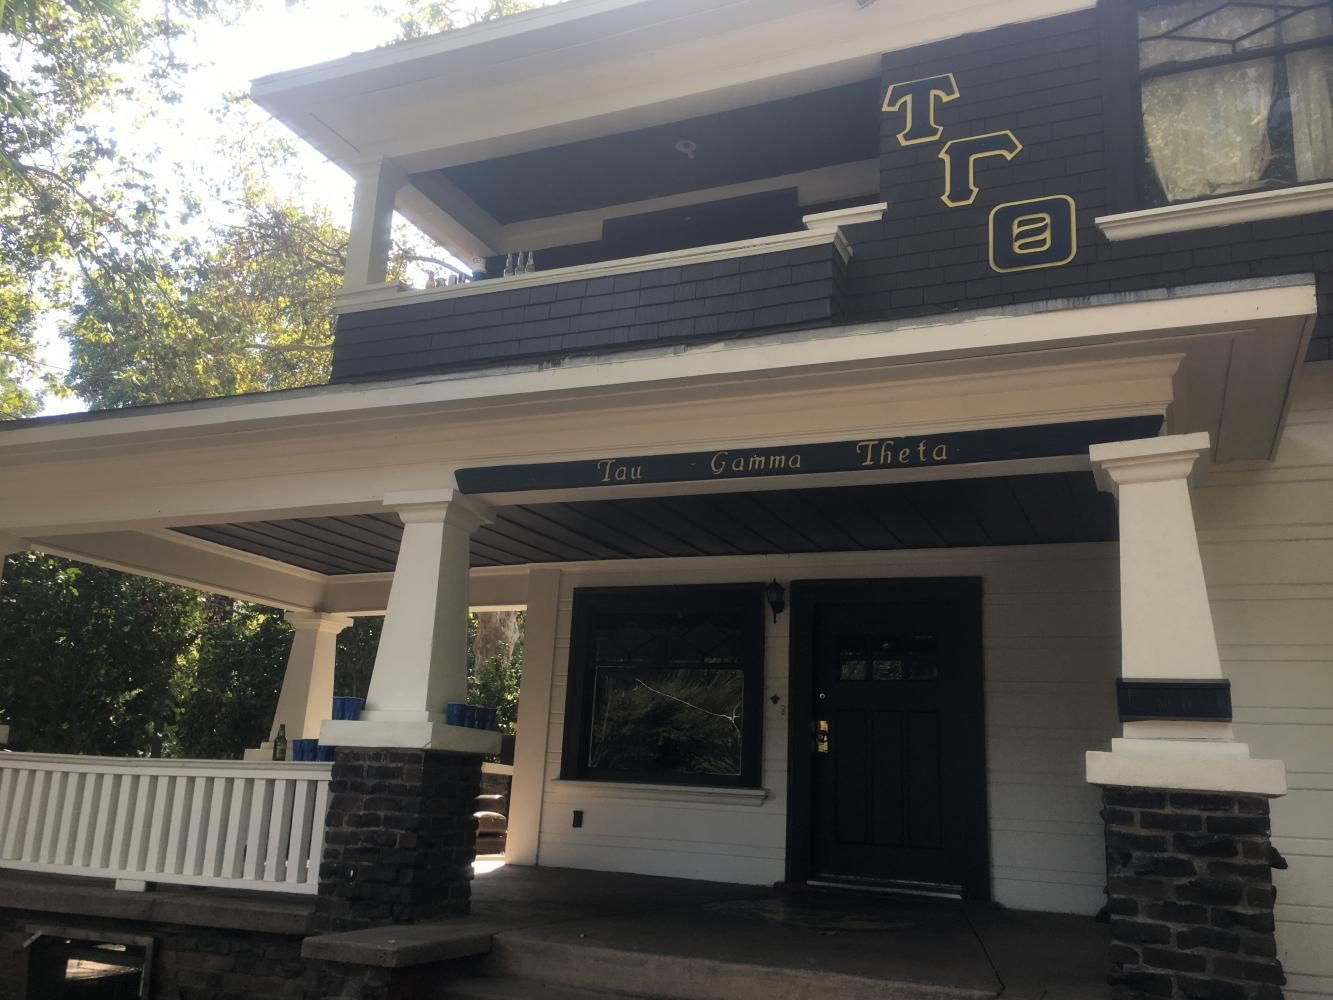 The Tau Gamma fraternity house, where a shooting took place. Photo credit: Natalie Hanson